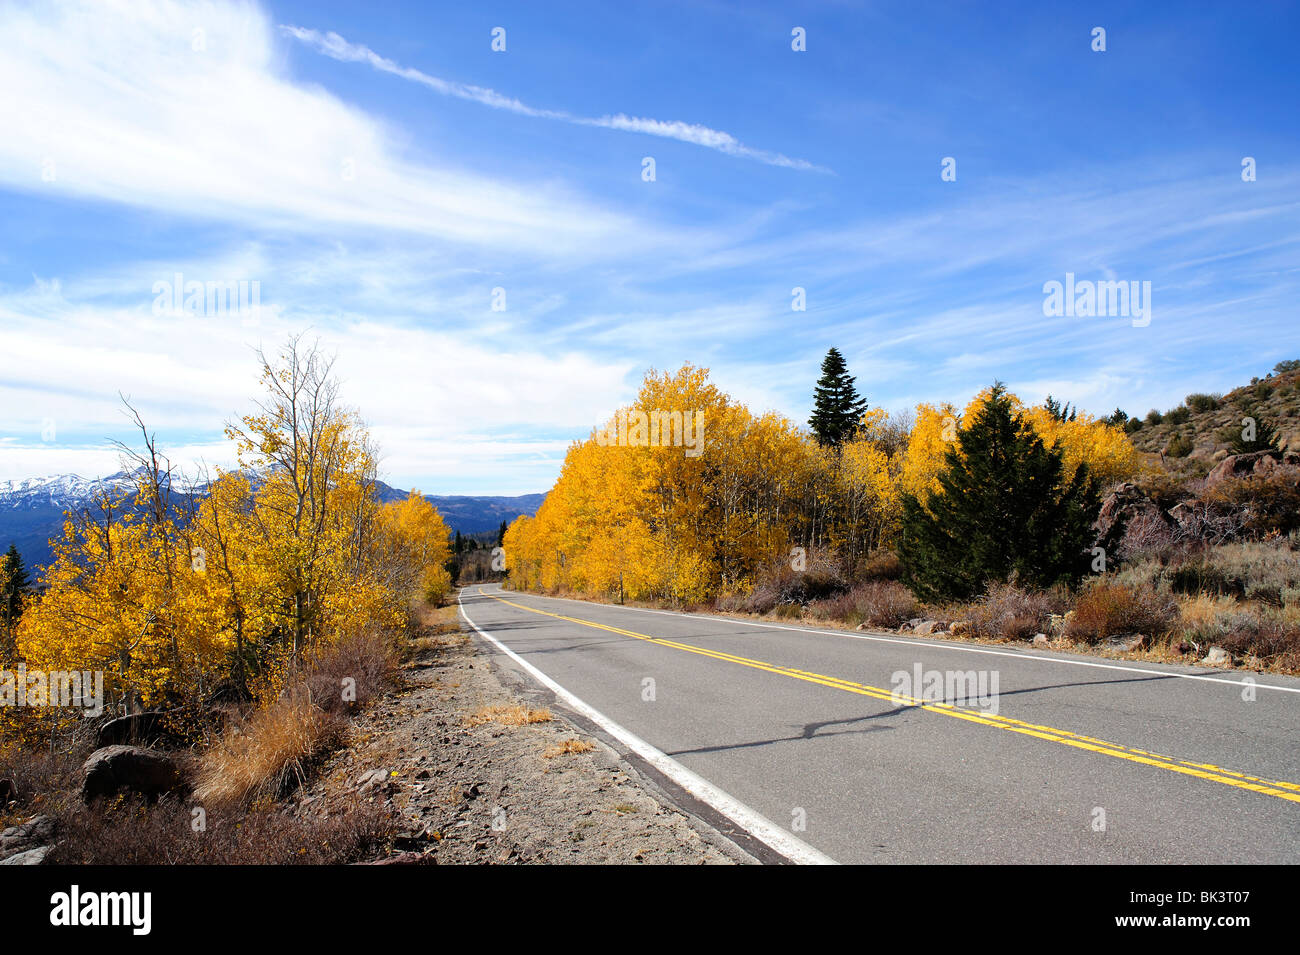 Autumn Aspens, Alpine County California - Stock Image